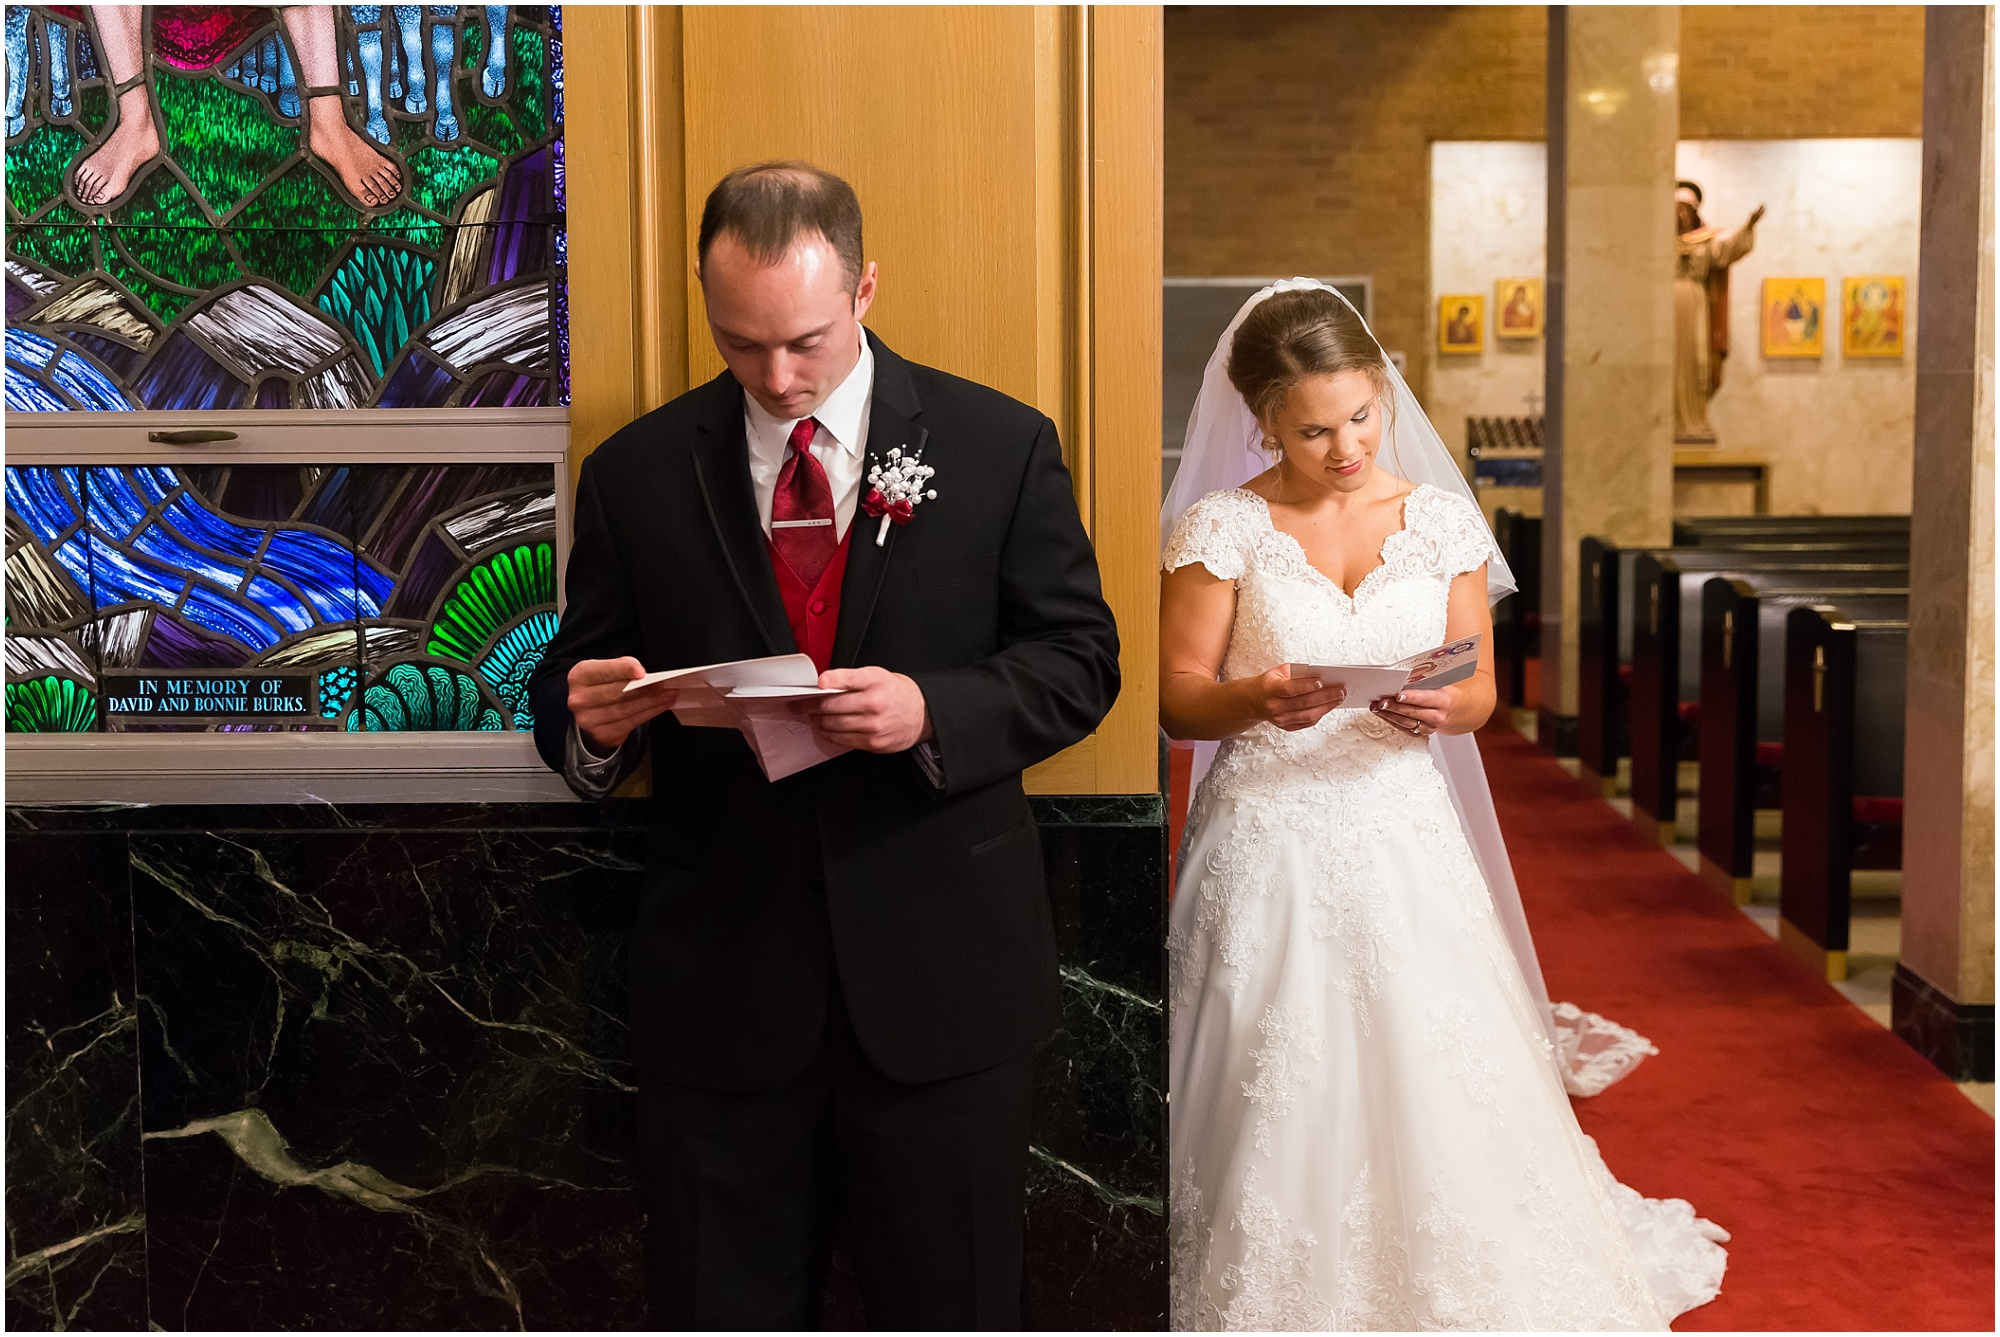 A bride and groom read the letters they wrote to one another before their wedding ceremony - Jason & Melaina Photography - www.jasonandmelaina.com